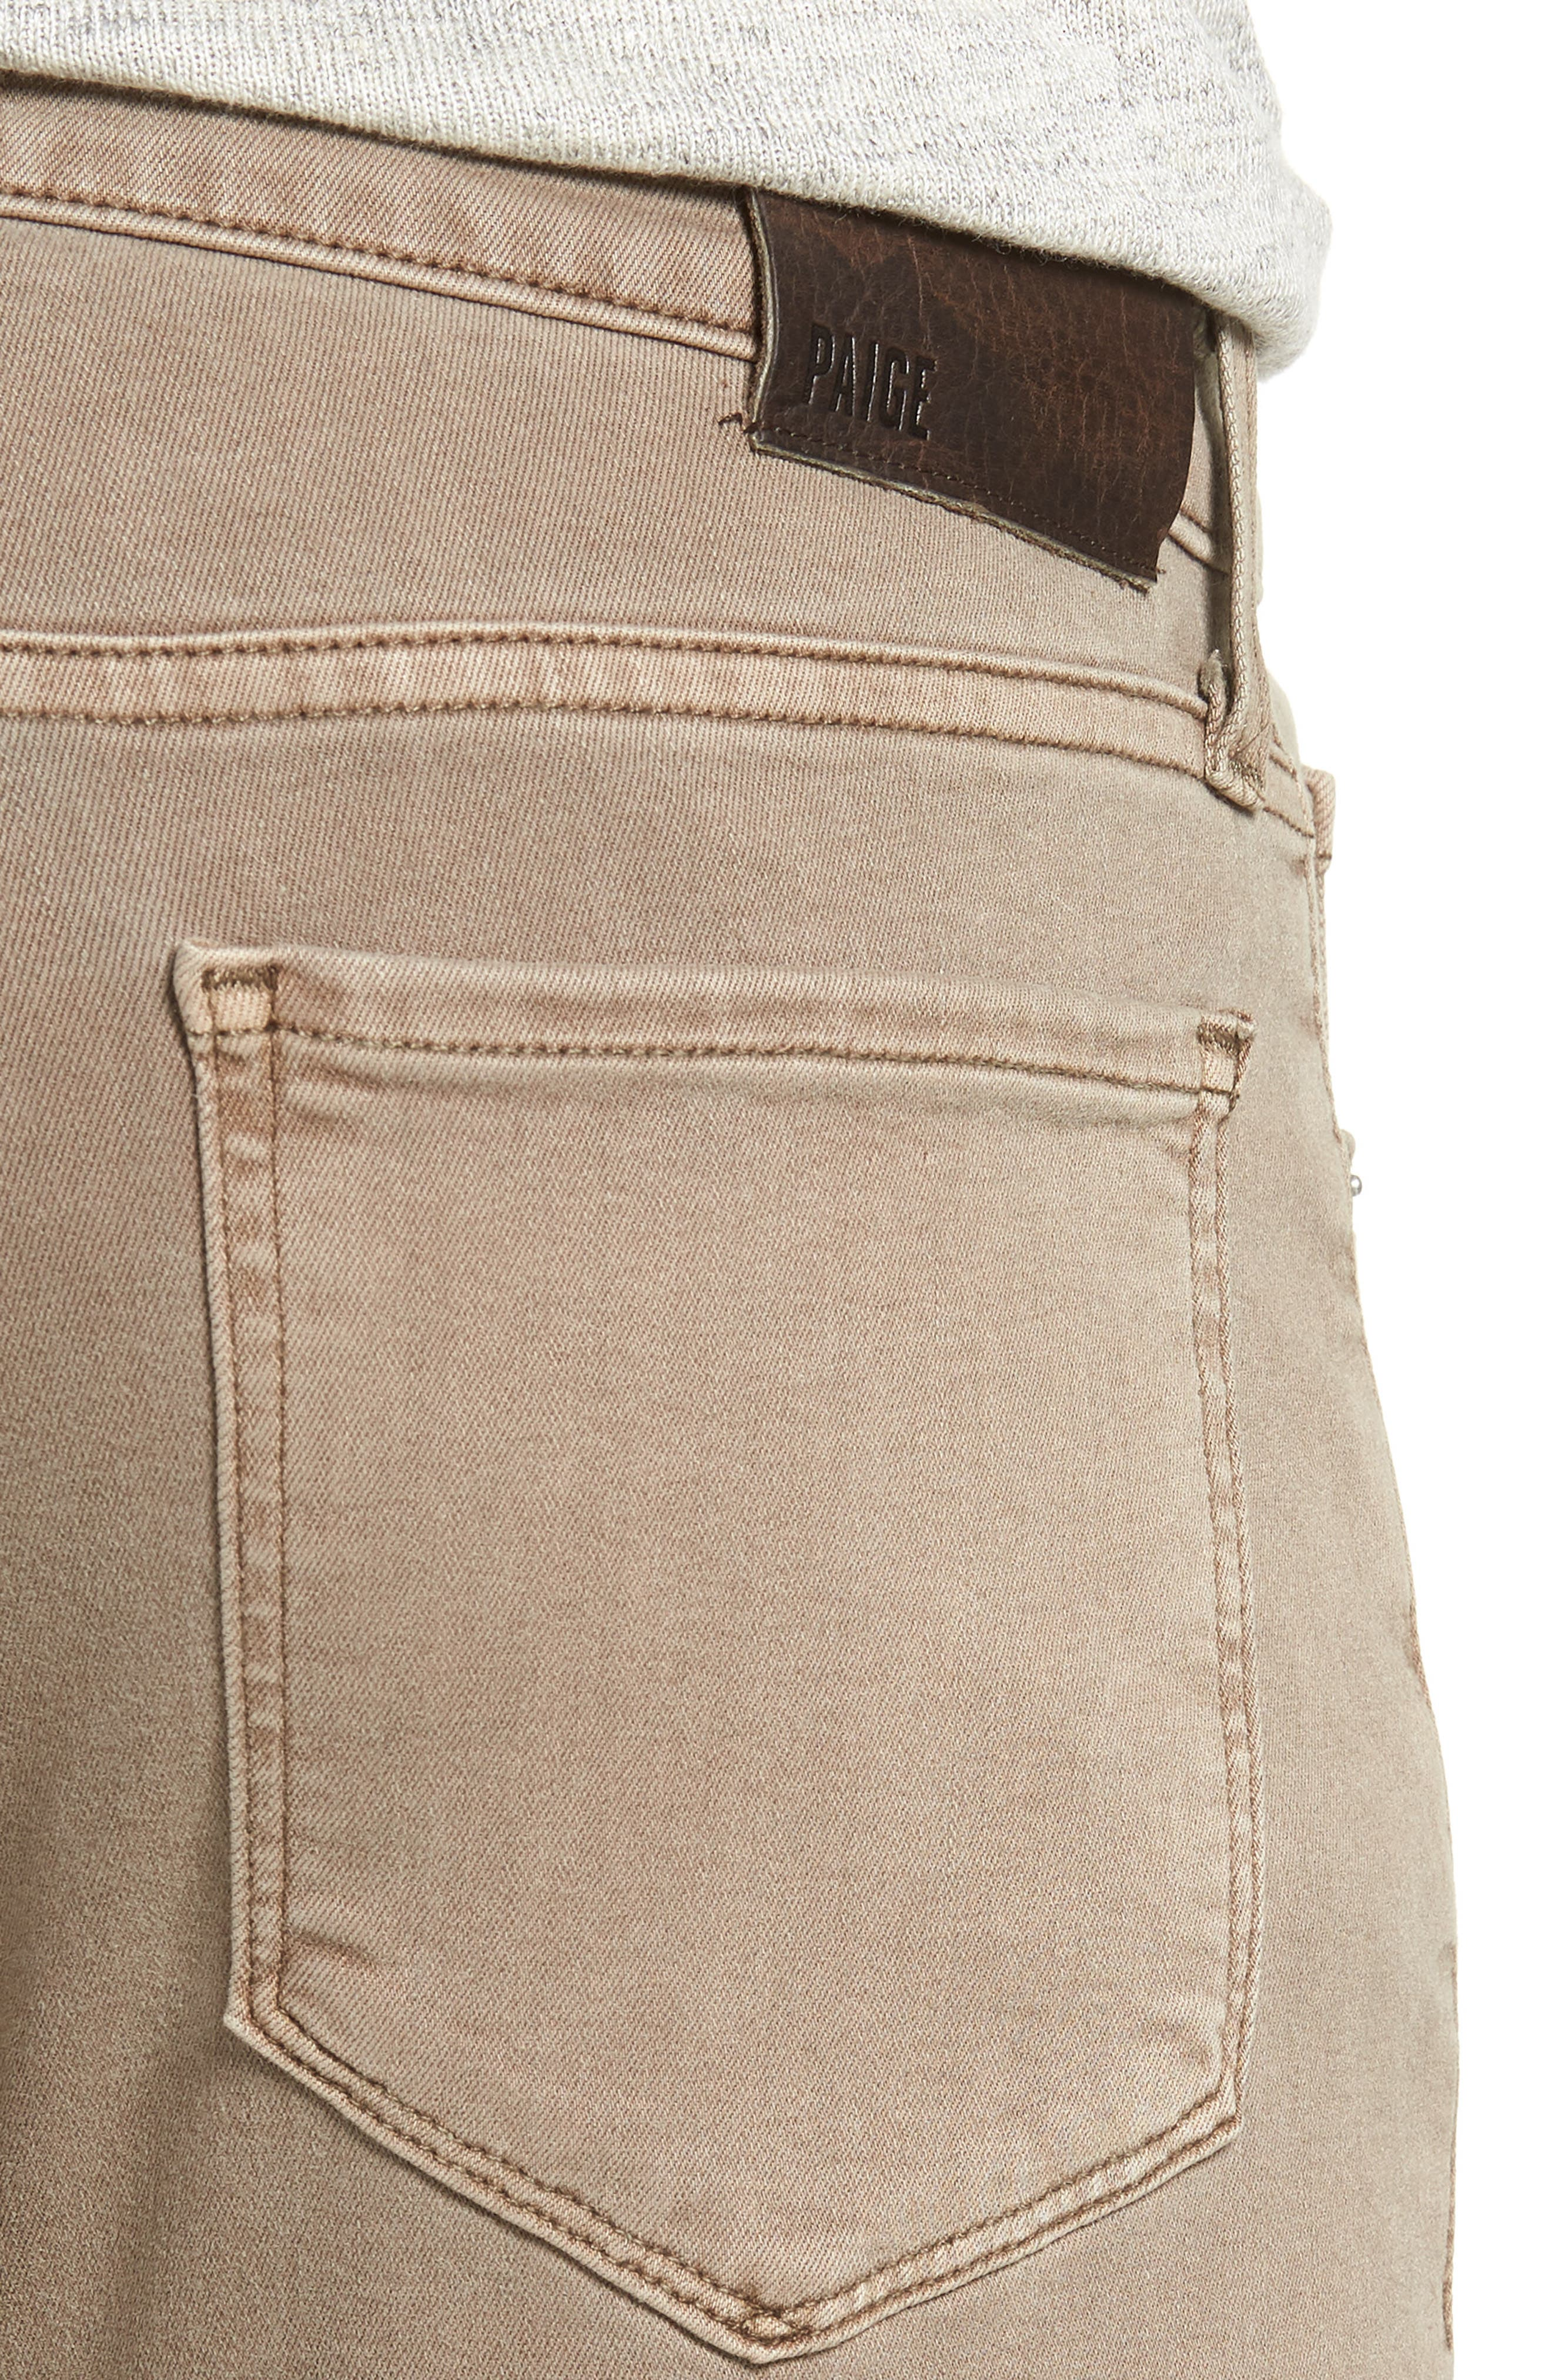 Transcend - Lennox Slim Fit Twill Pants,                             Alternate thumbnail 4, color,                             VINTAGE MUSHROOM